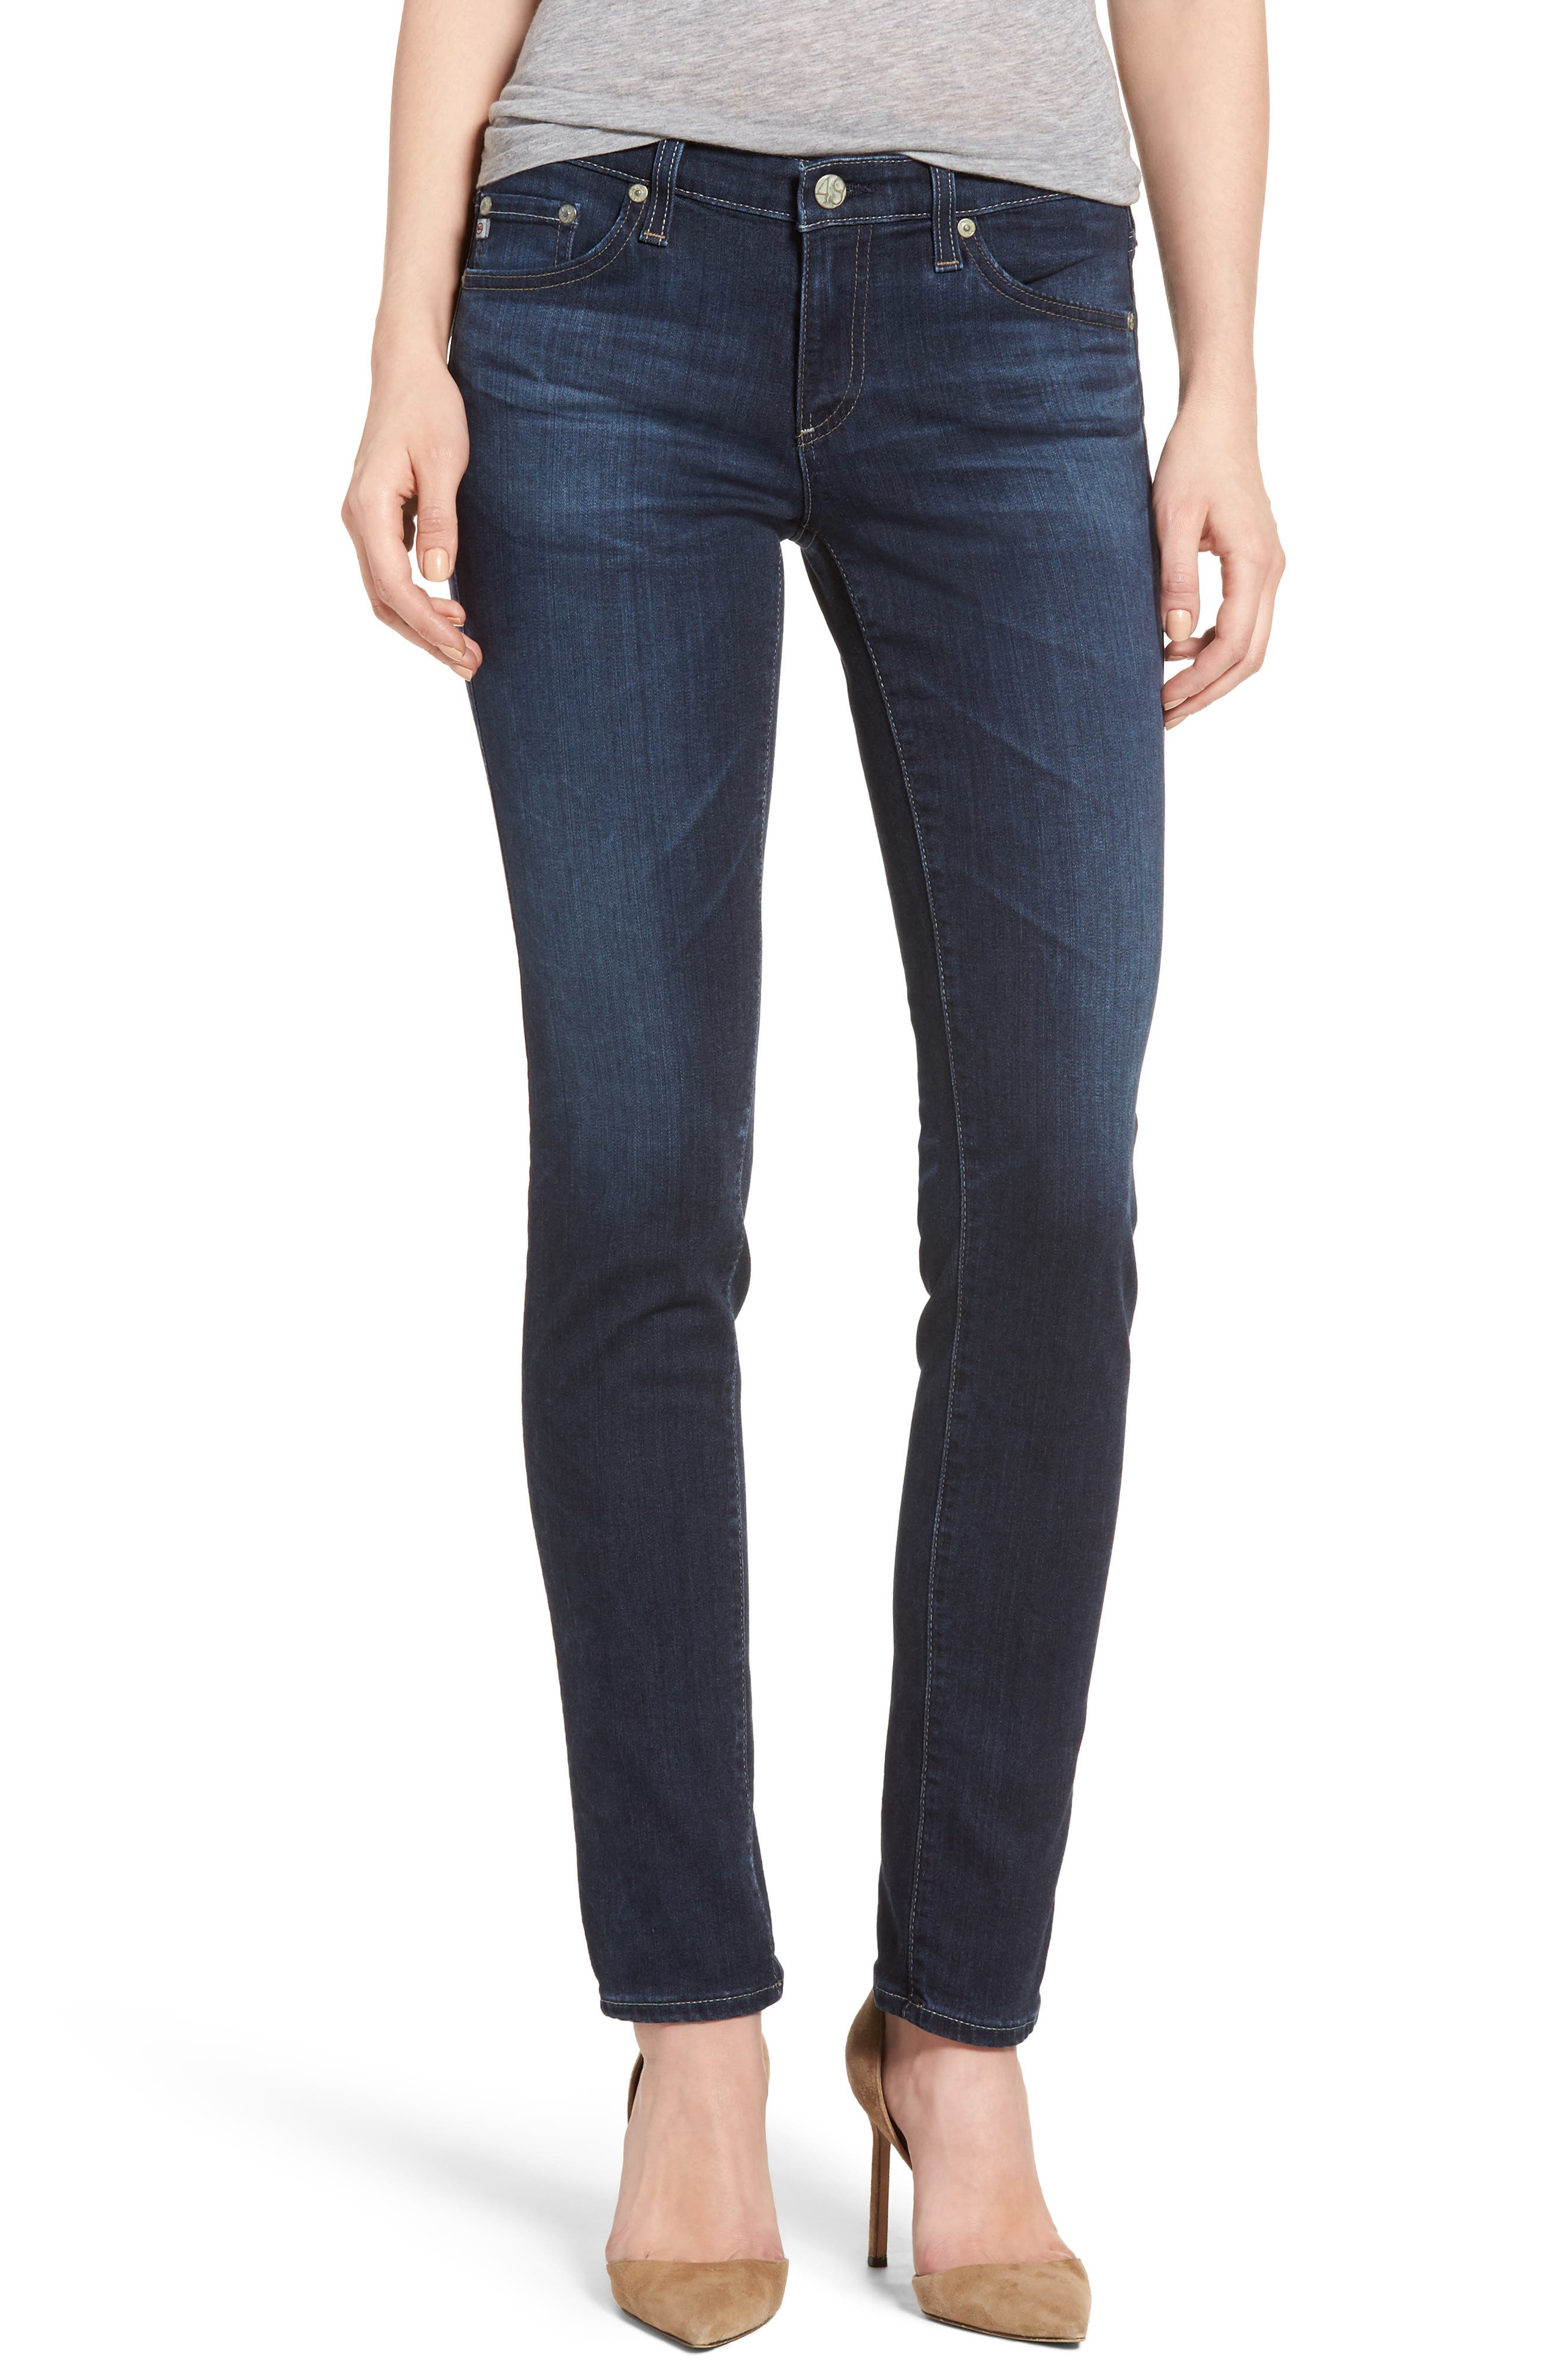 AG 'The Stilt' Cigarette Skinny Jeans (02 Years Dark View)